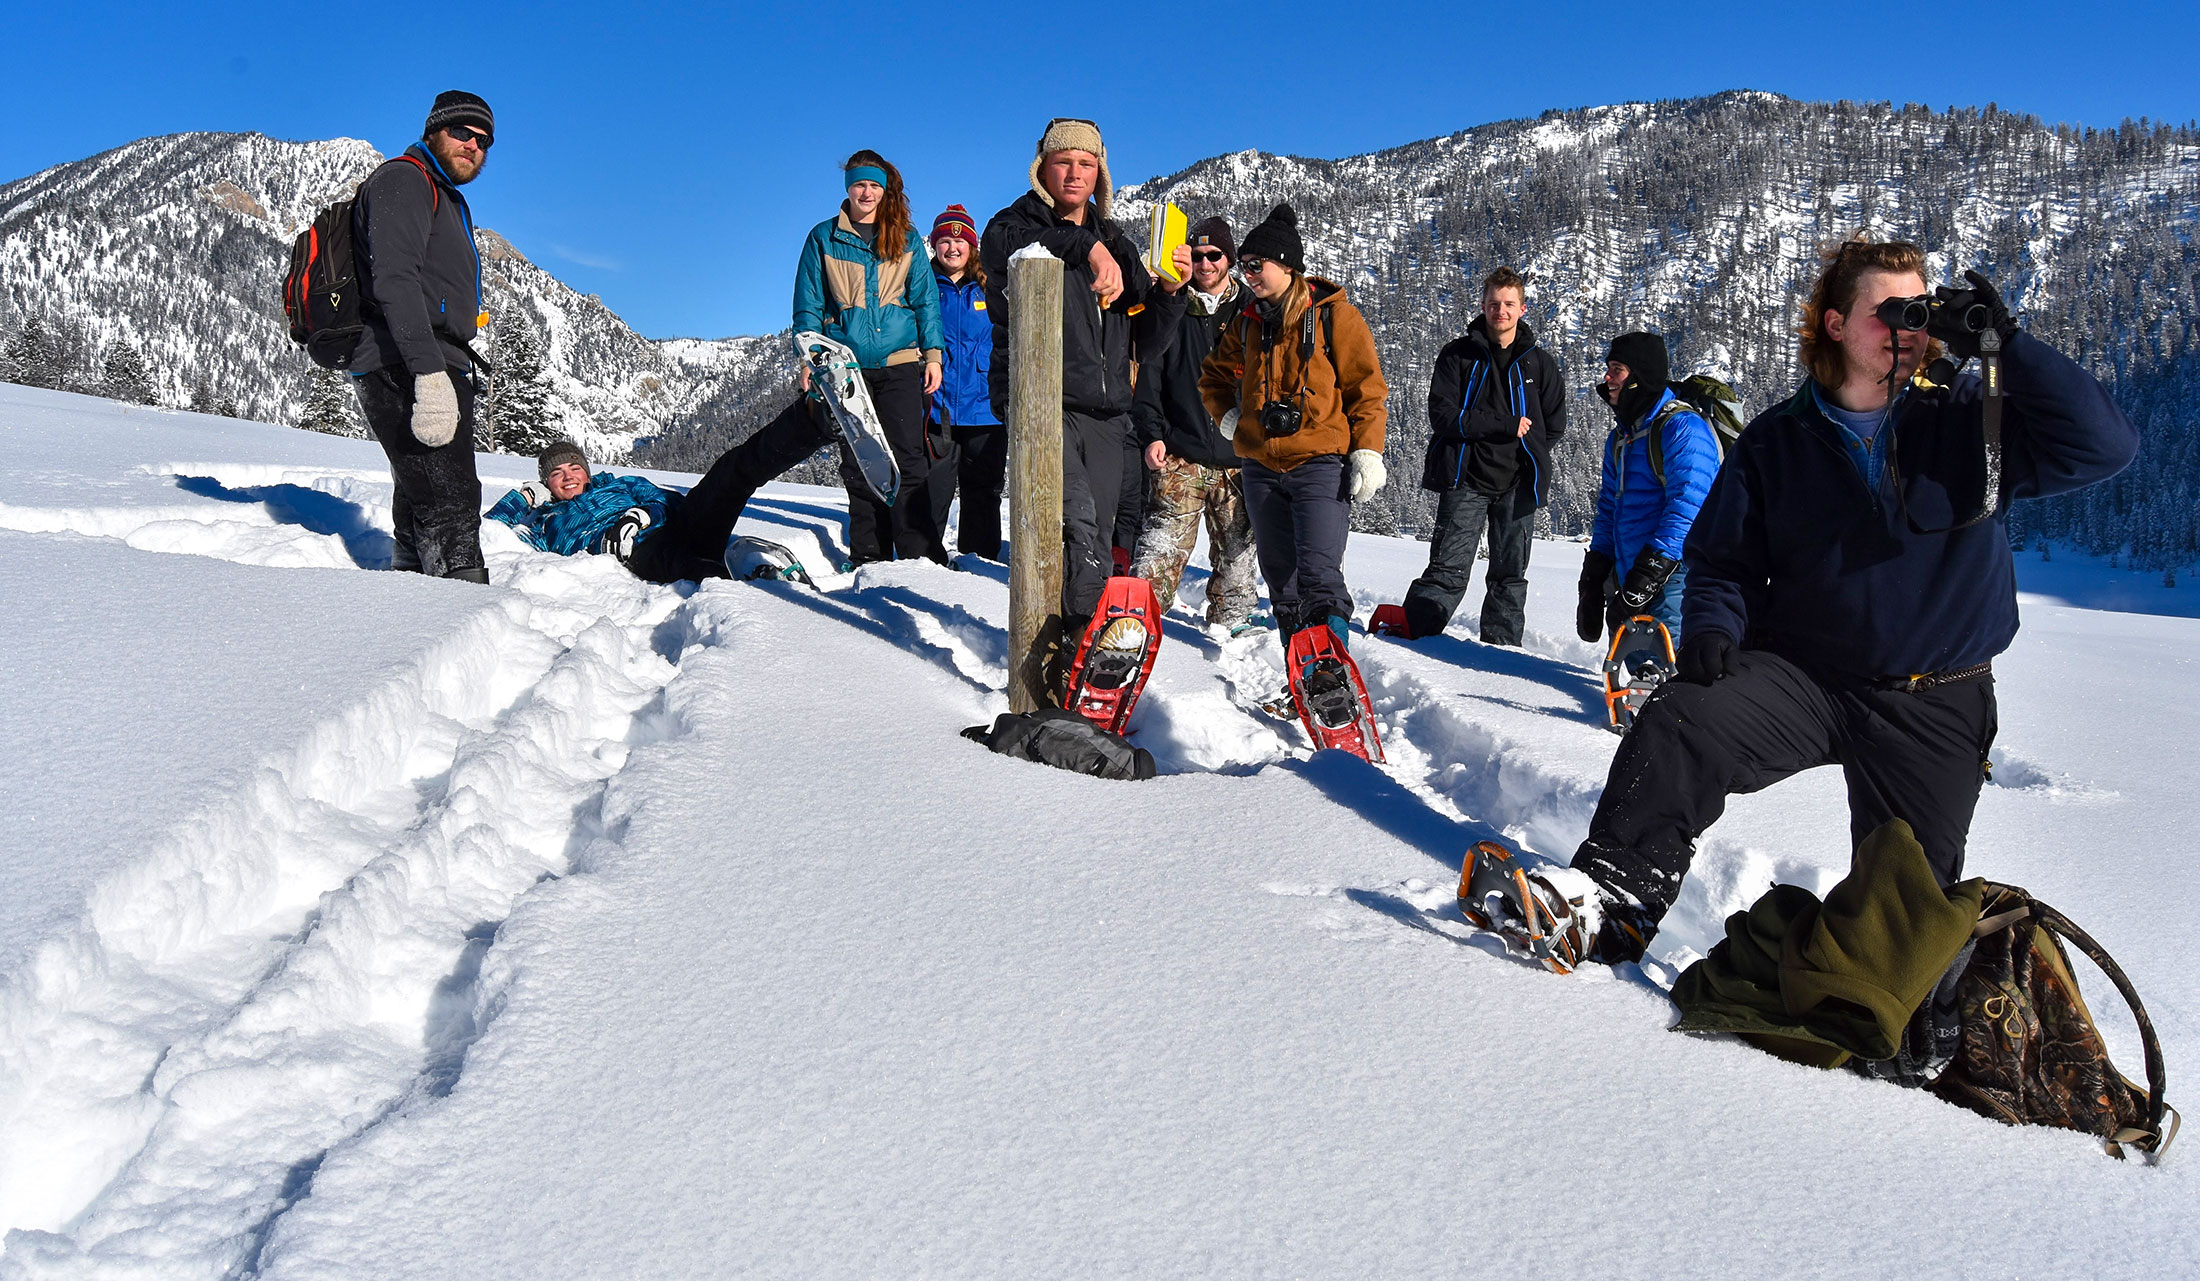 Students on snowy mountainside during winter ecology trip